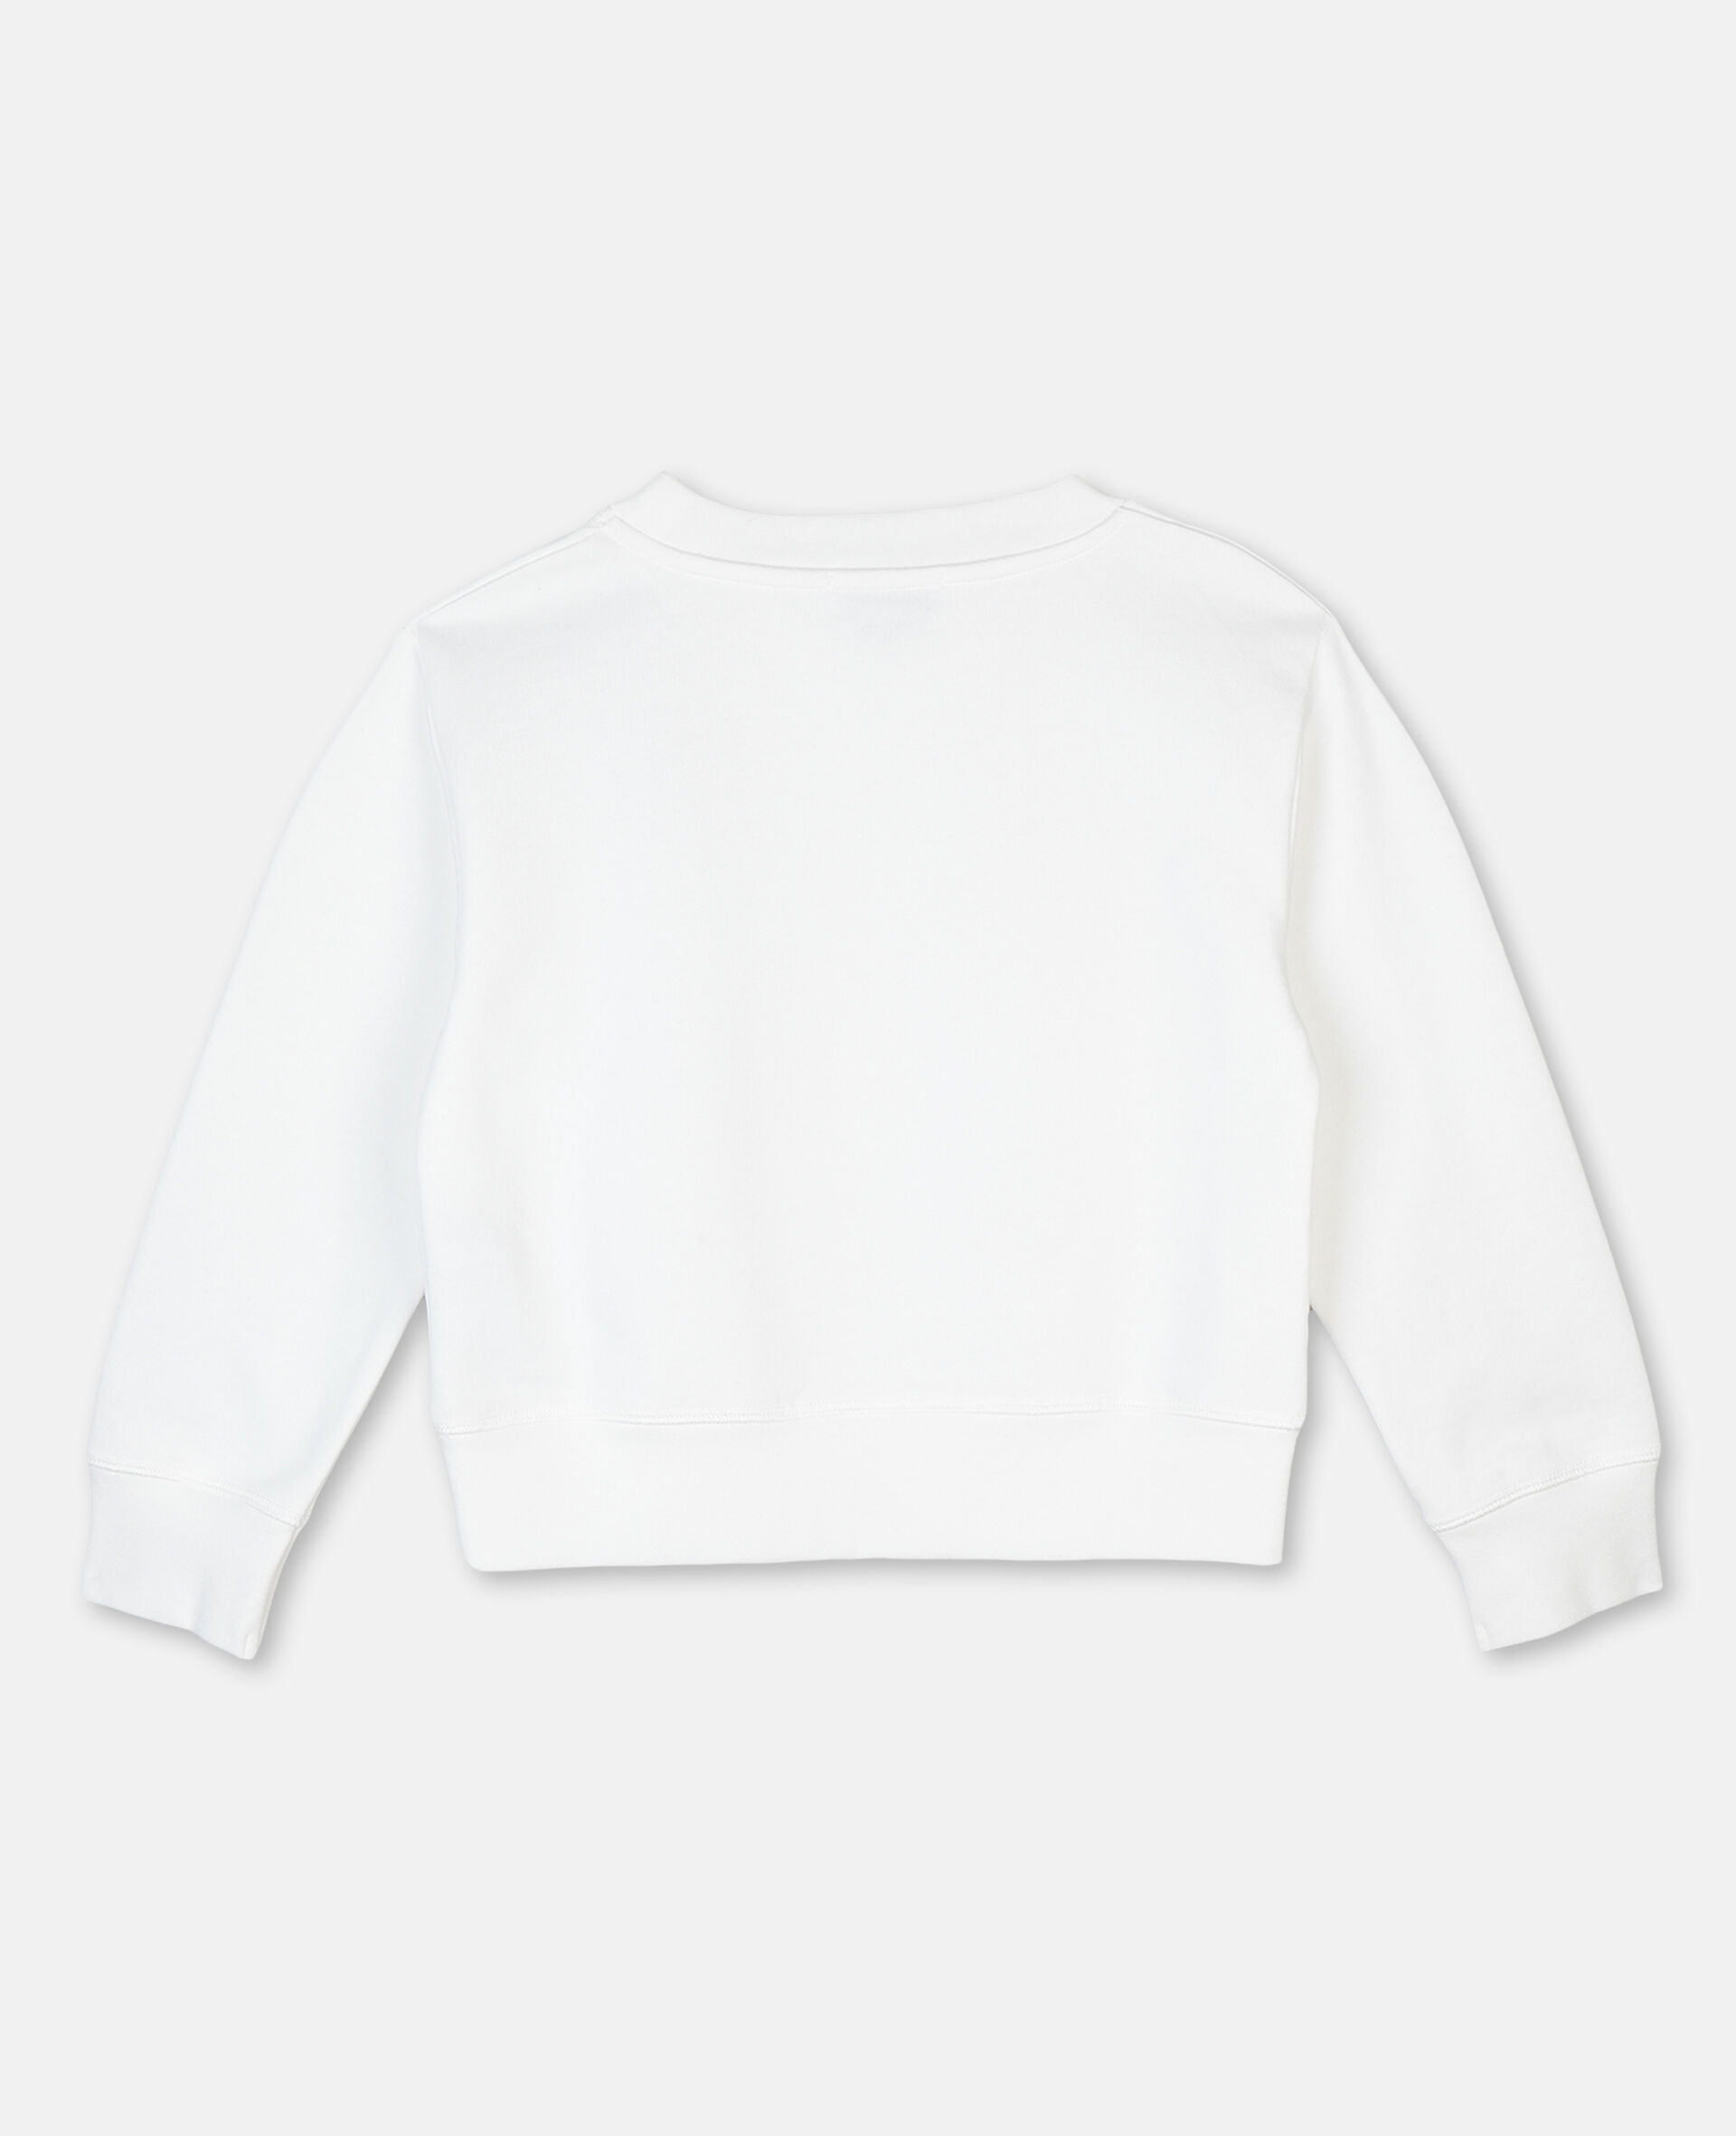 Palm Cotton Fleece Logo Sweatshirt -White-large image number 3